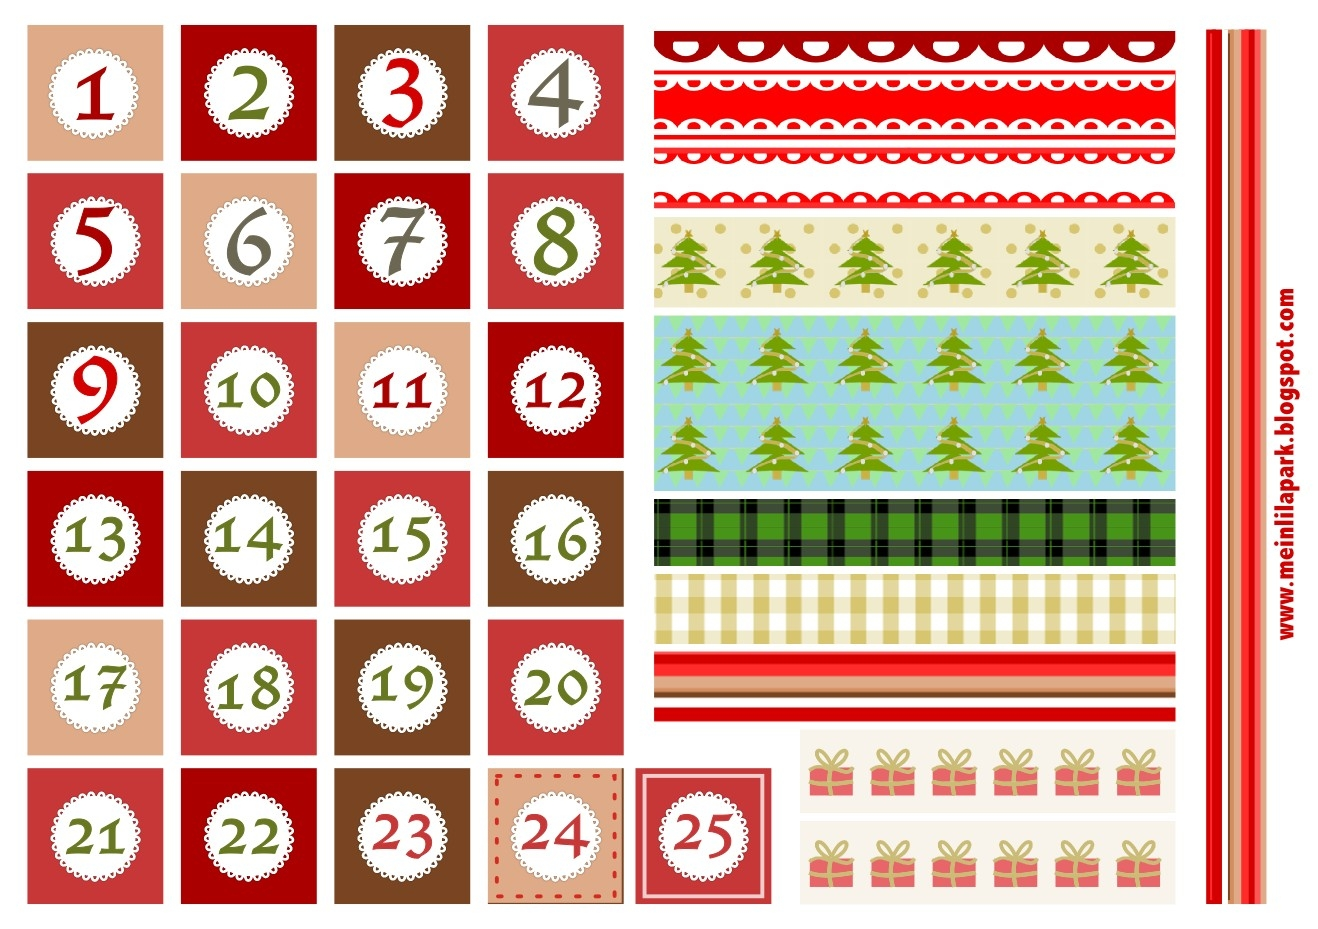 548 Free Printable Advent Calendar Template Free Printable Advent with Advent Calendar Printable Numbers Calendar Template